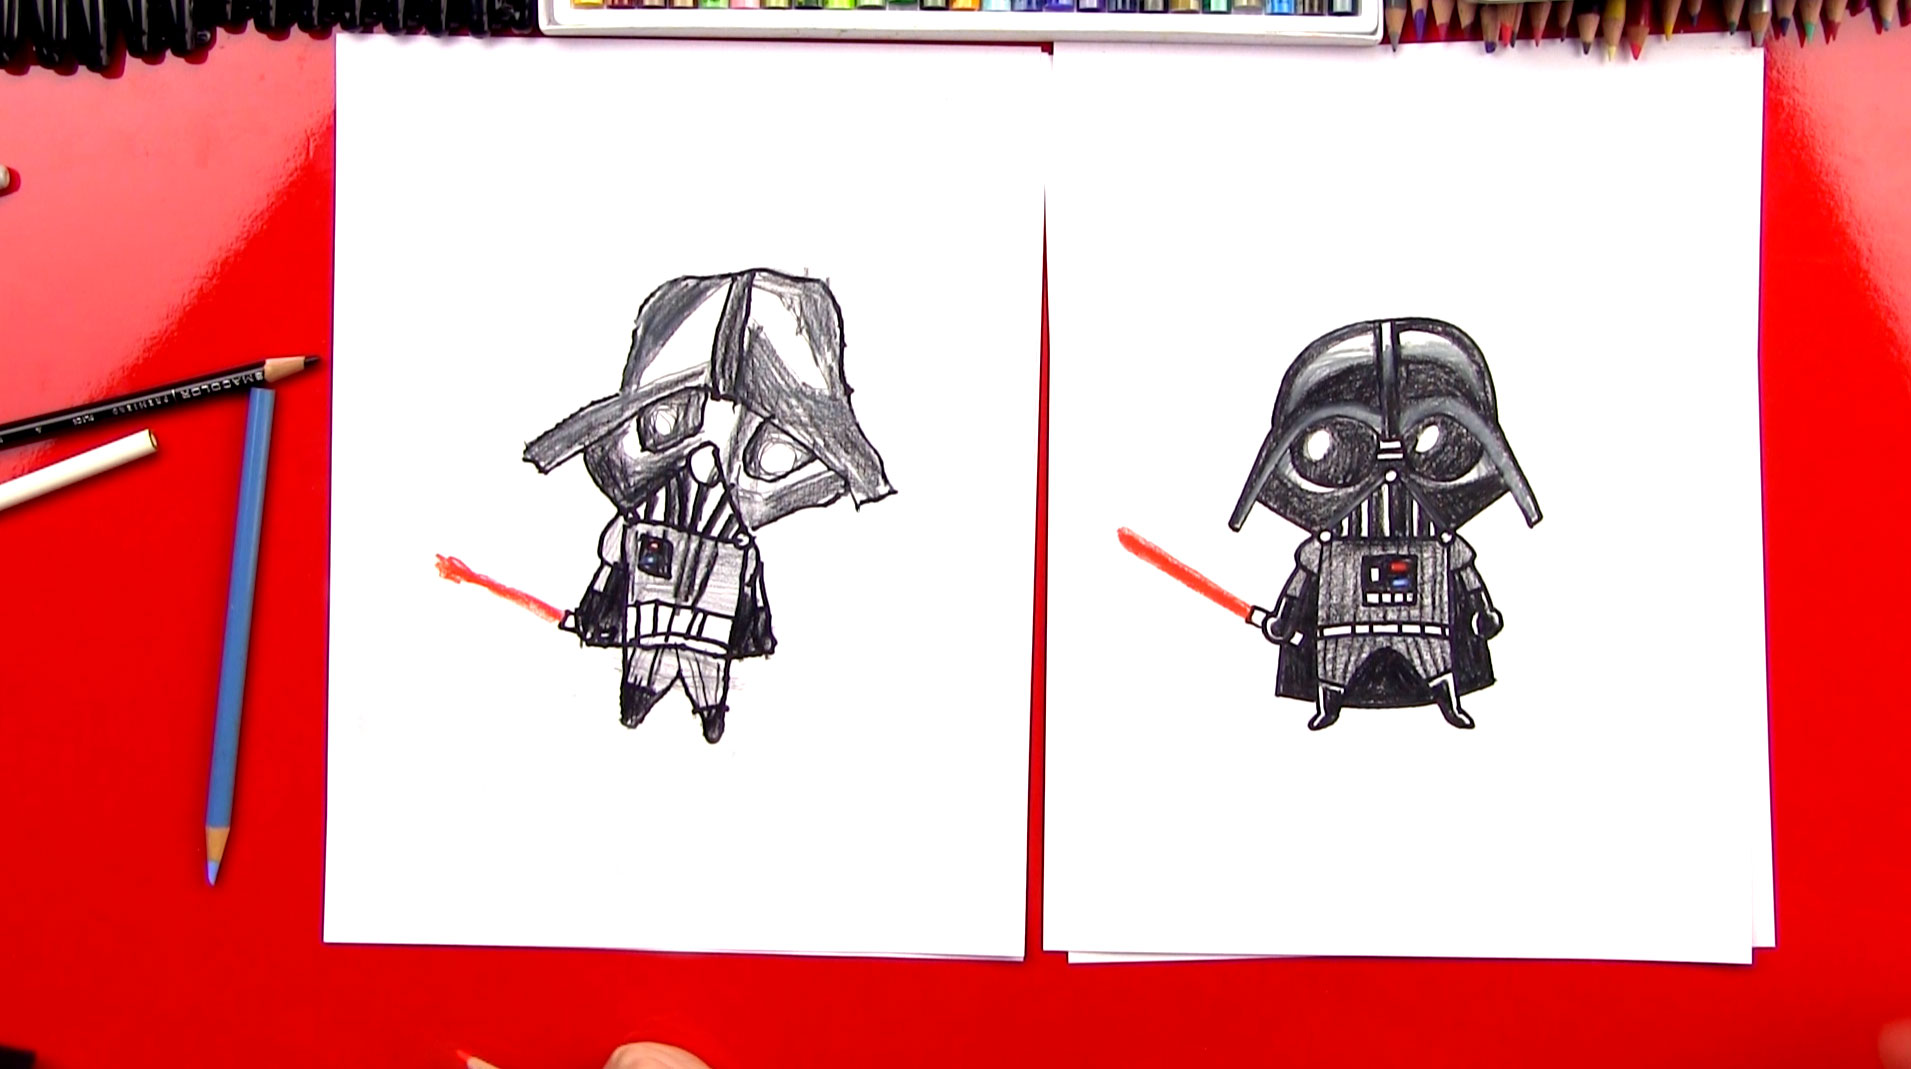 How to draw a Darth Vader from Star Wars in stages 99